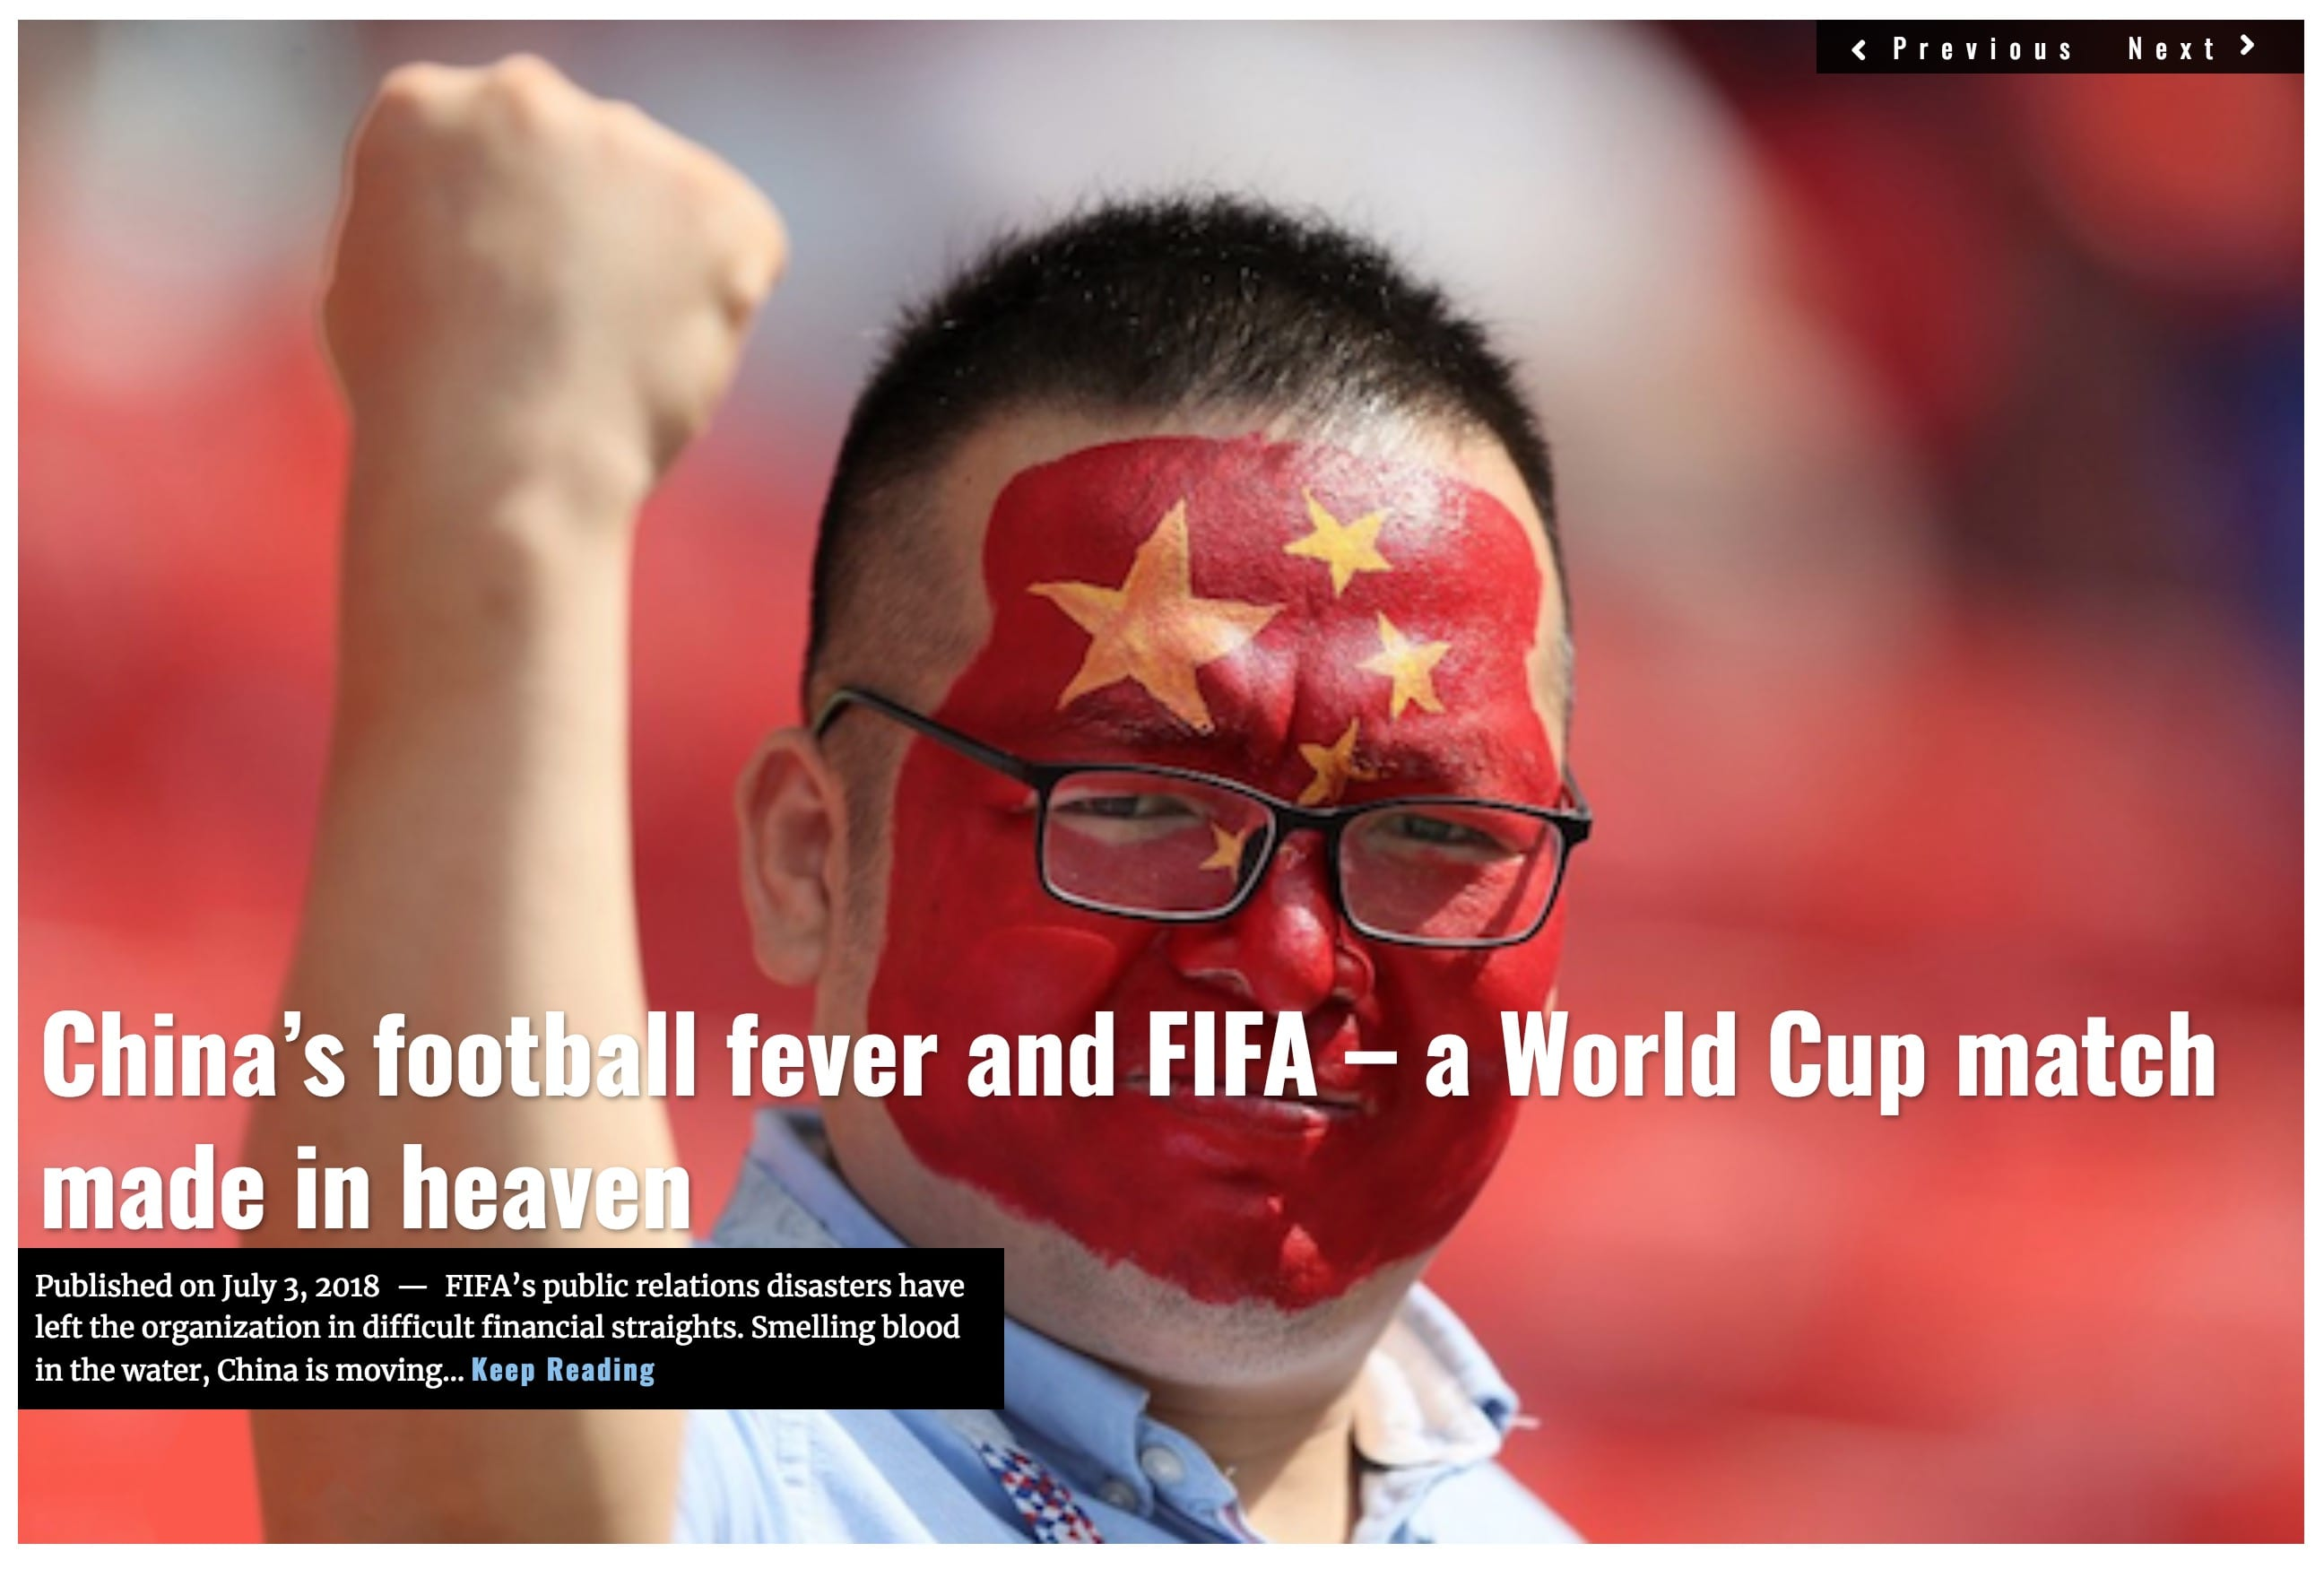 Image Lima Charlie News Headline China's football fever and FIFA JUL 3 2018